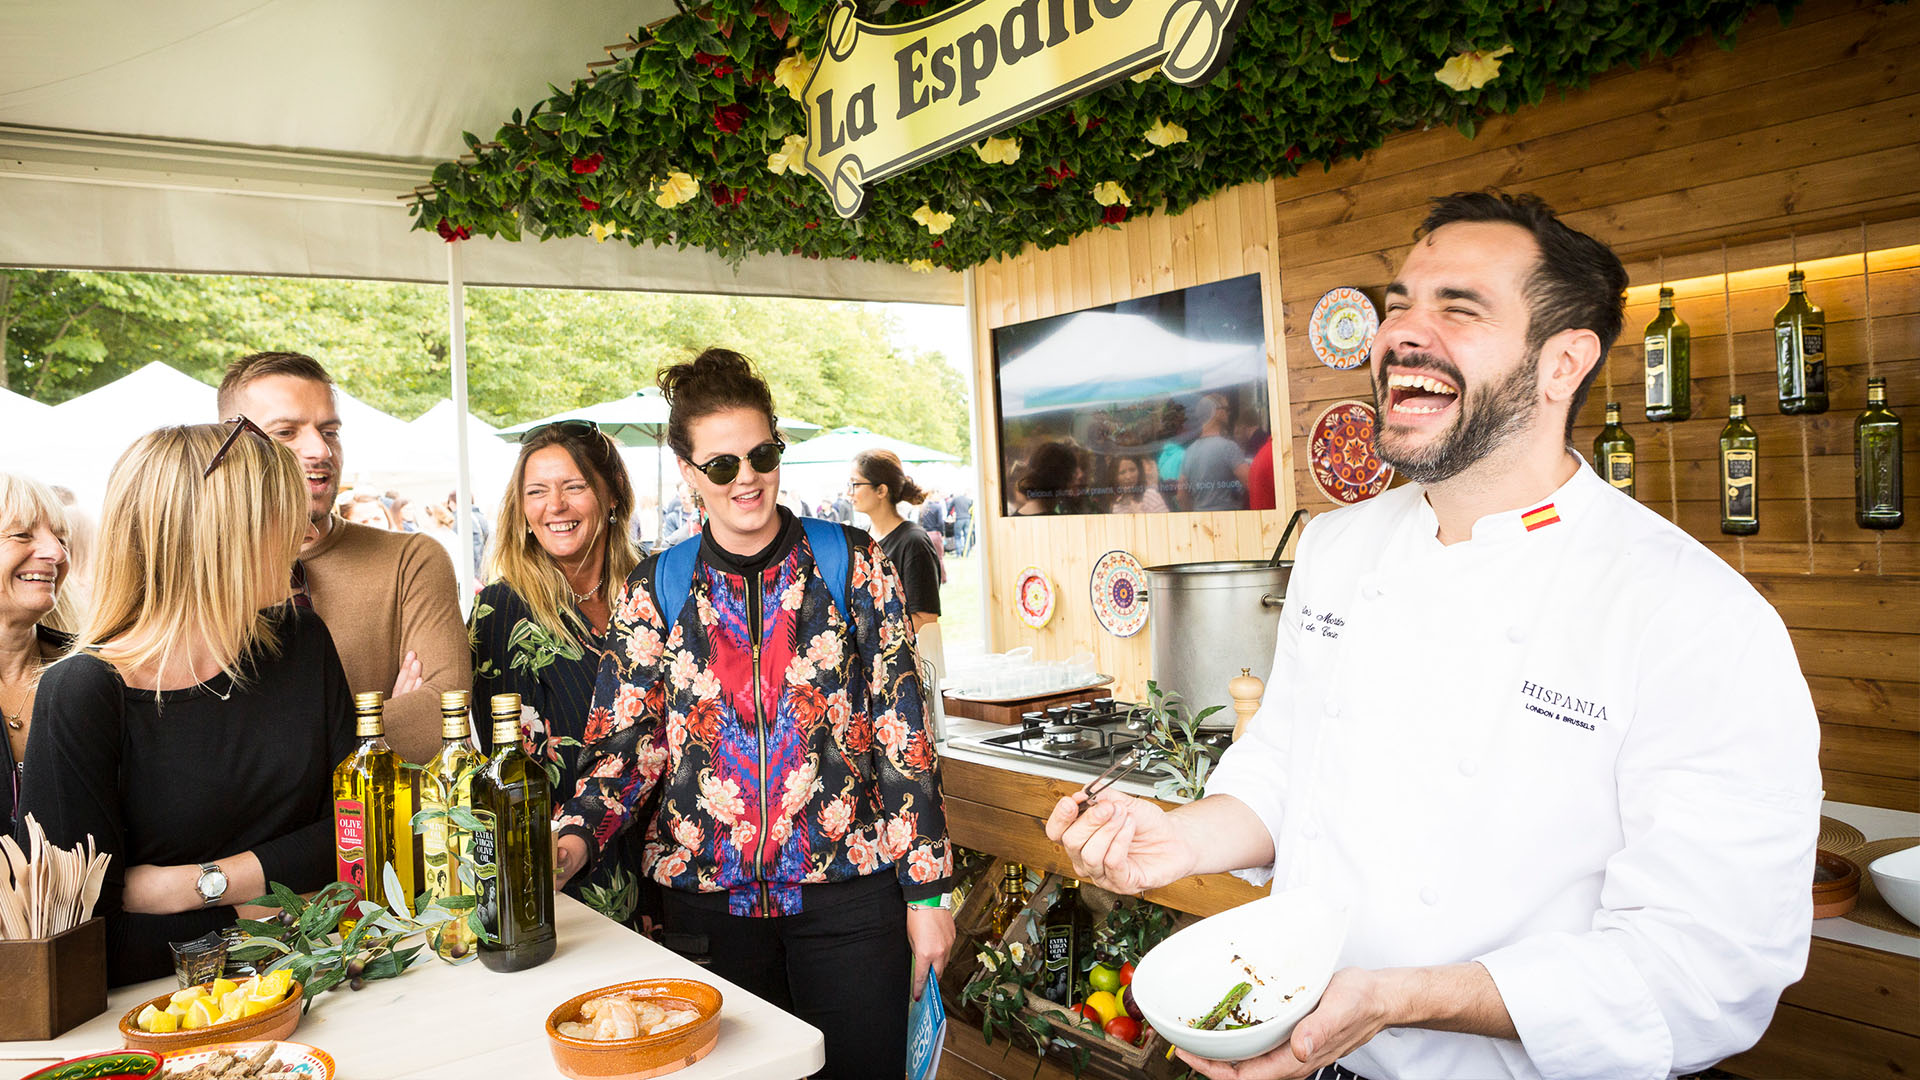 La Espanonola Hispania Hampton Court Food Festival Laughing